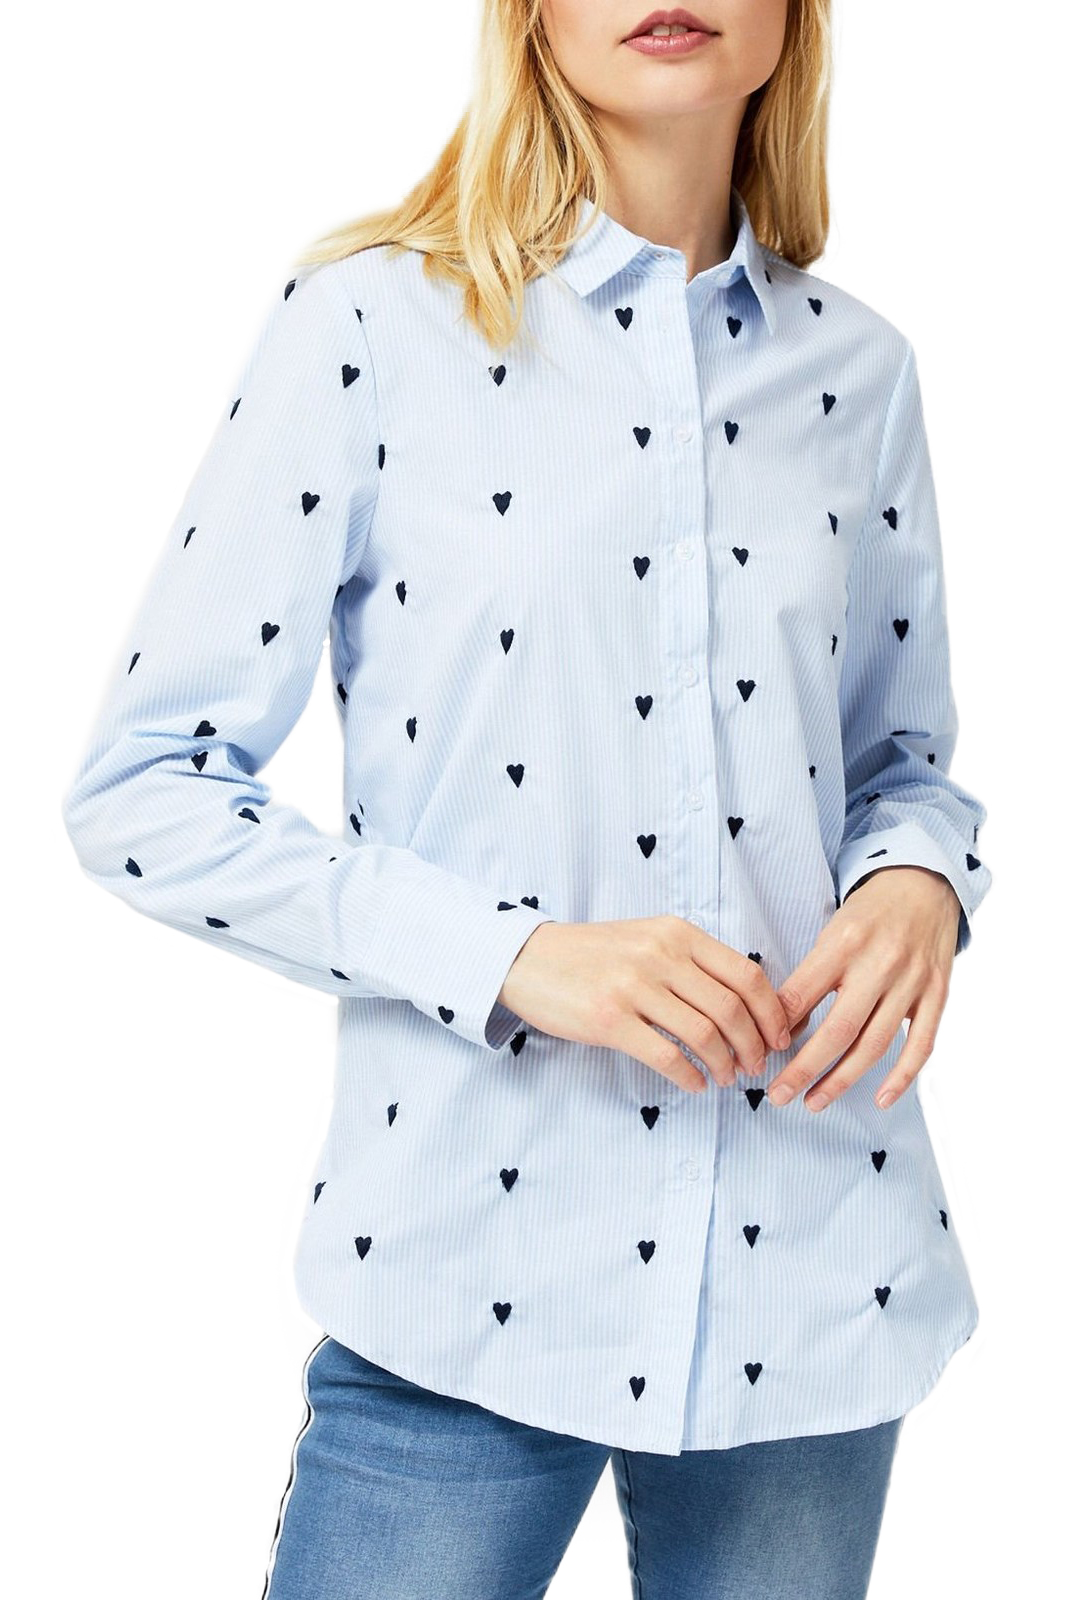 Moodo Light Blue Shirt with Hearts